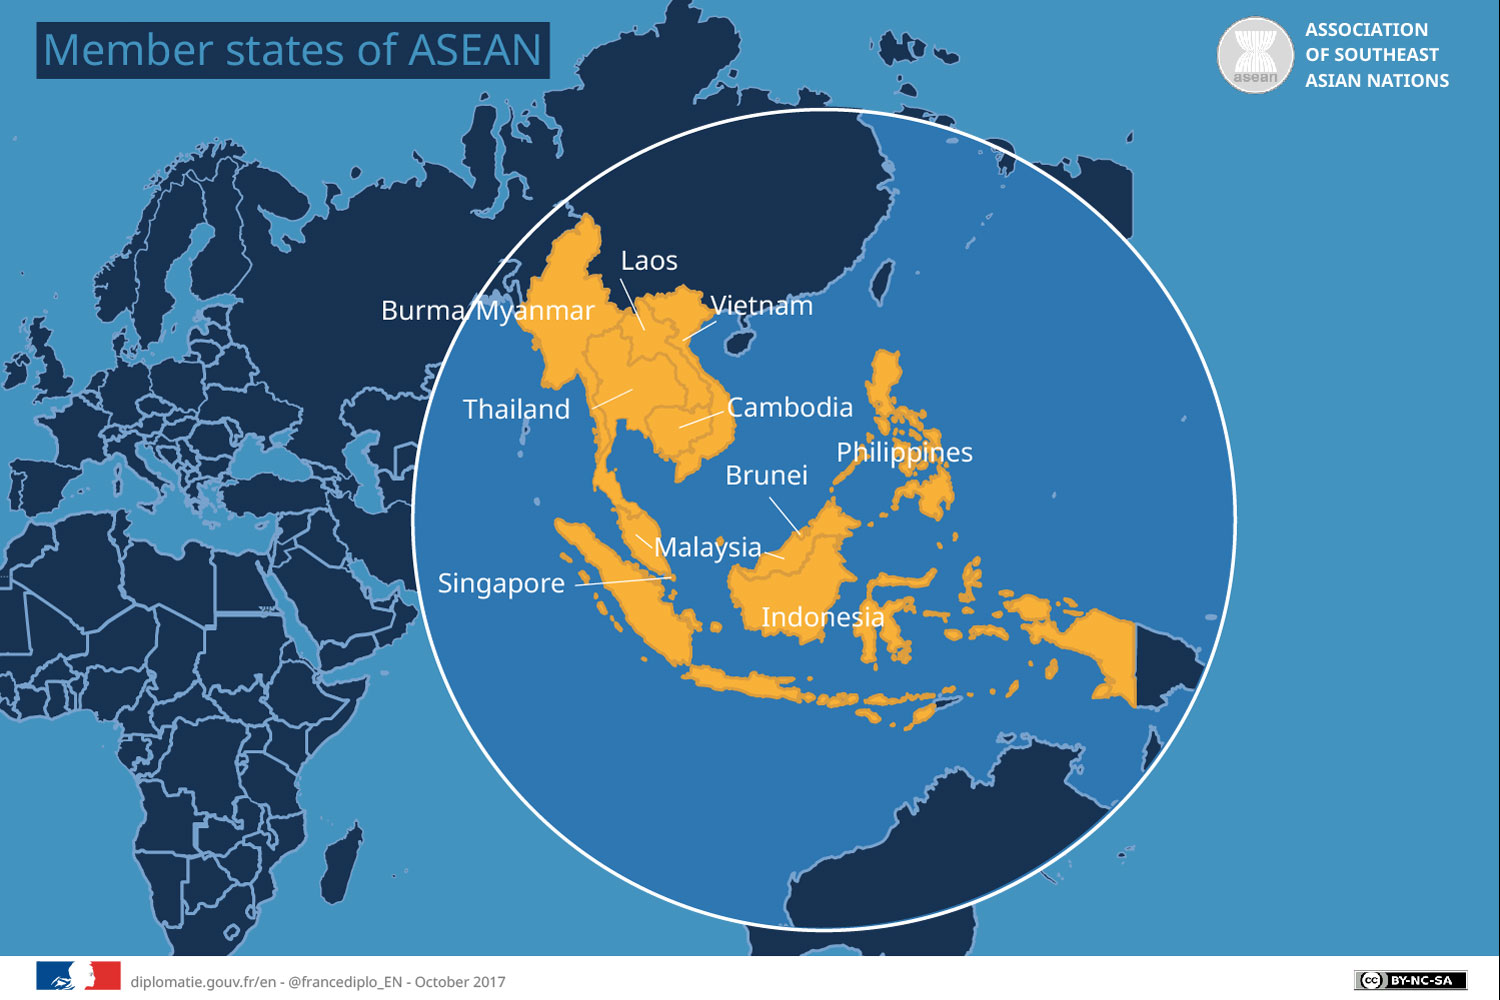 logistic trend in asean countries The global market trends that we identified affect the way the chemical industry runs its logistics trade patterns are shifting and we see increasing competition between producers.